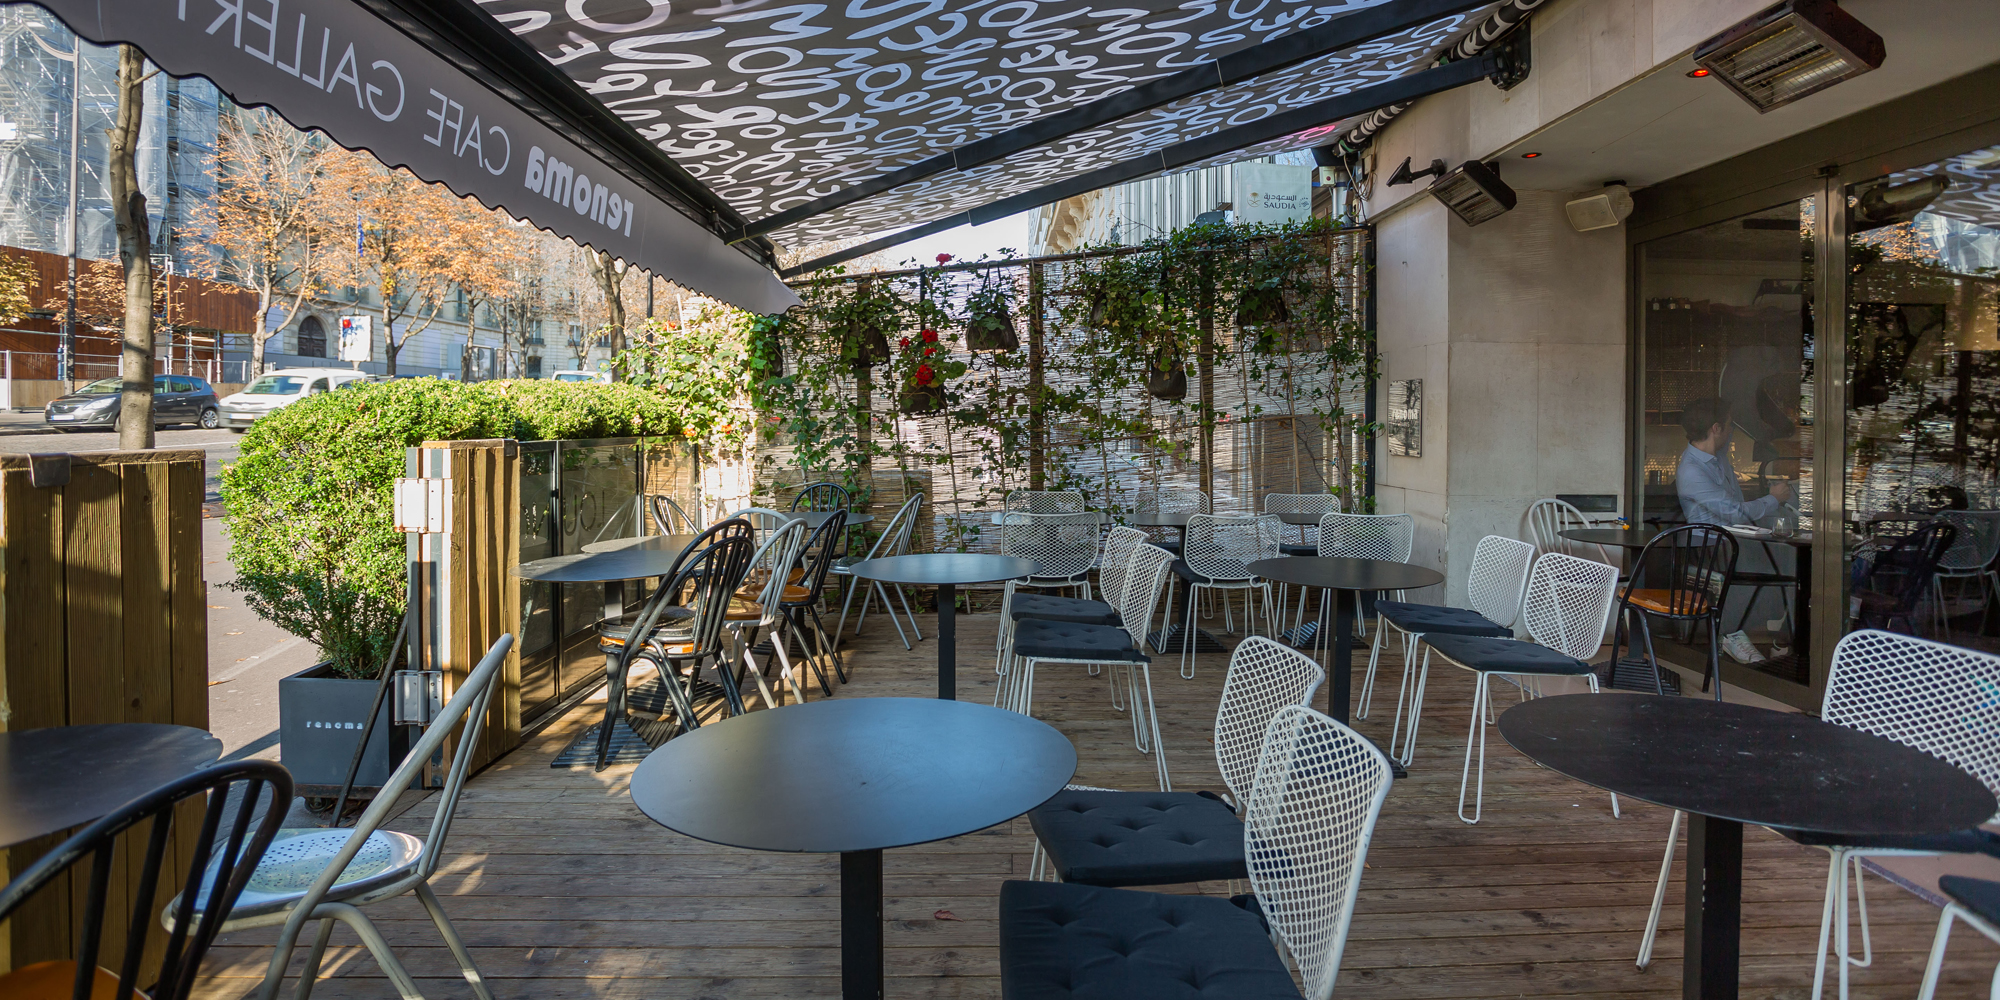 Brunch Renoma Café Gallery (75008 Paris)